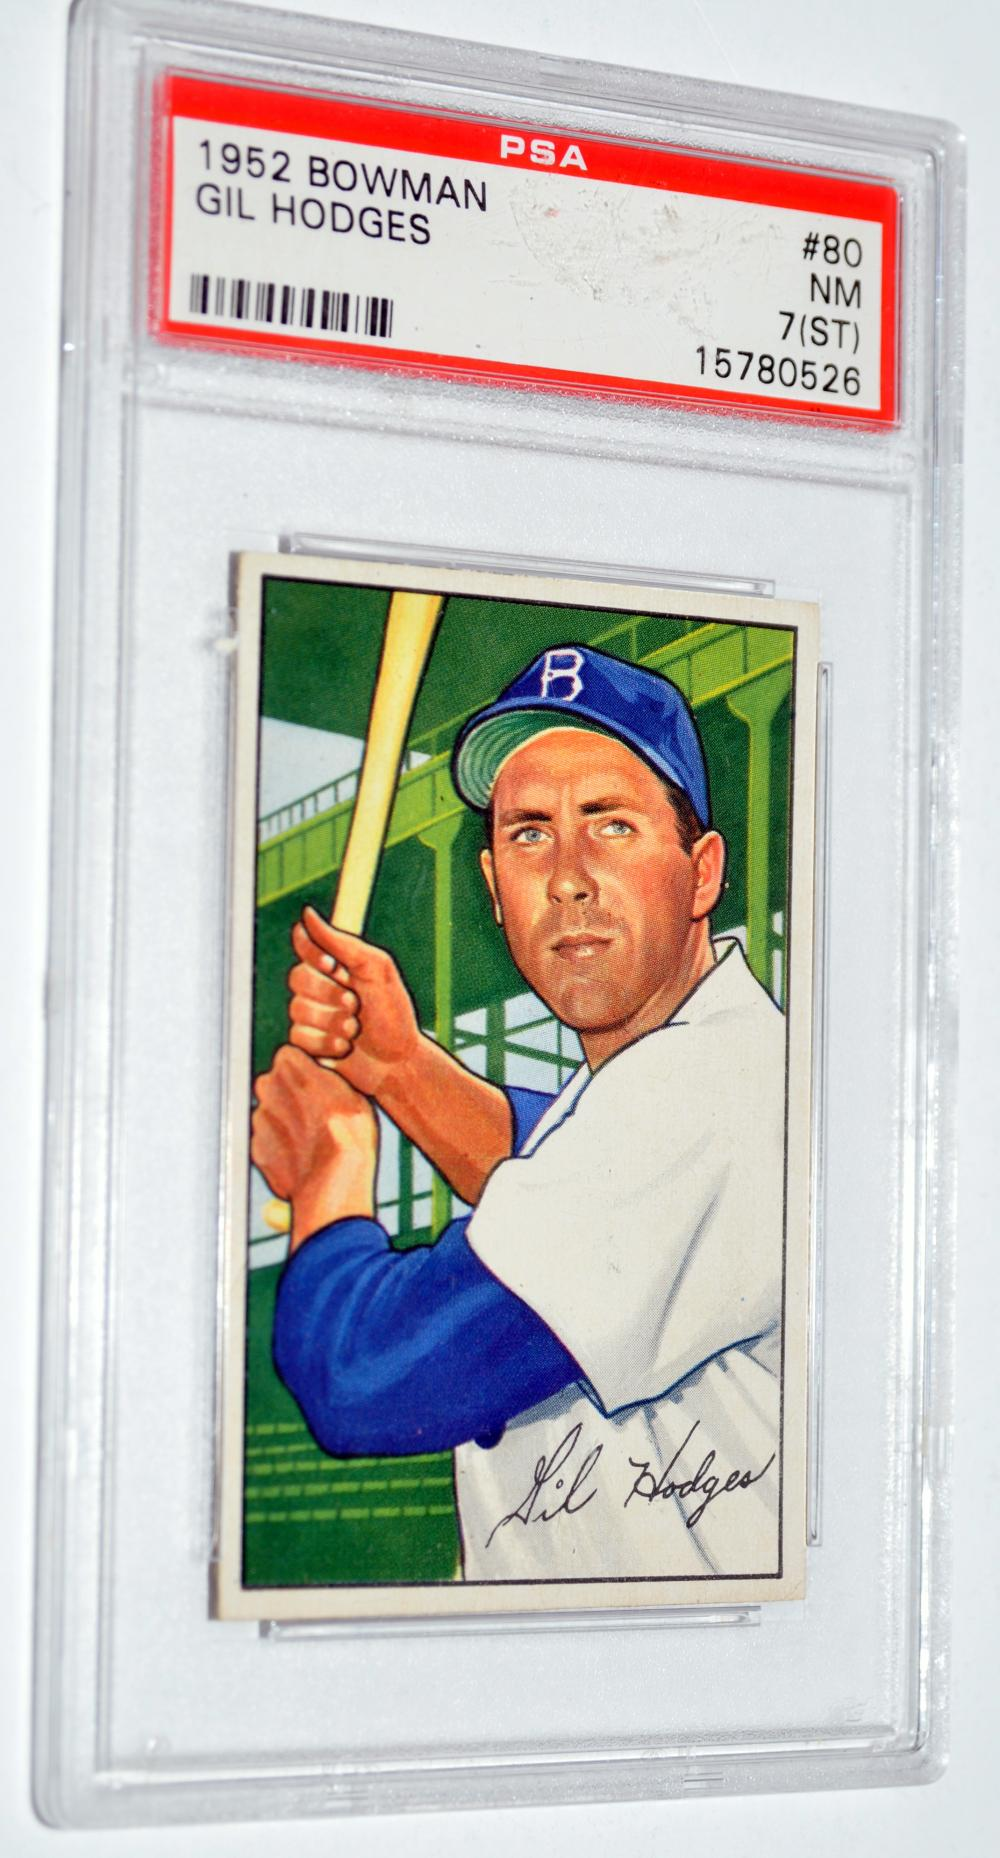 1952 Bowman Gil Hodges Brooklyn Dodgers